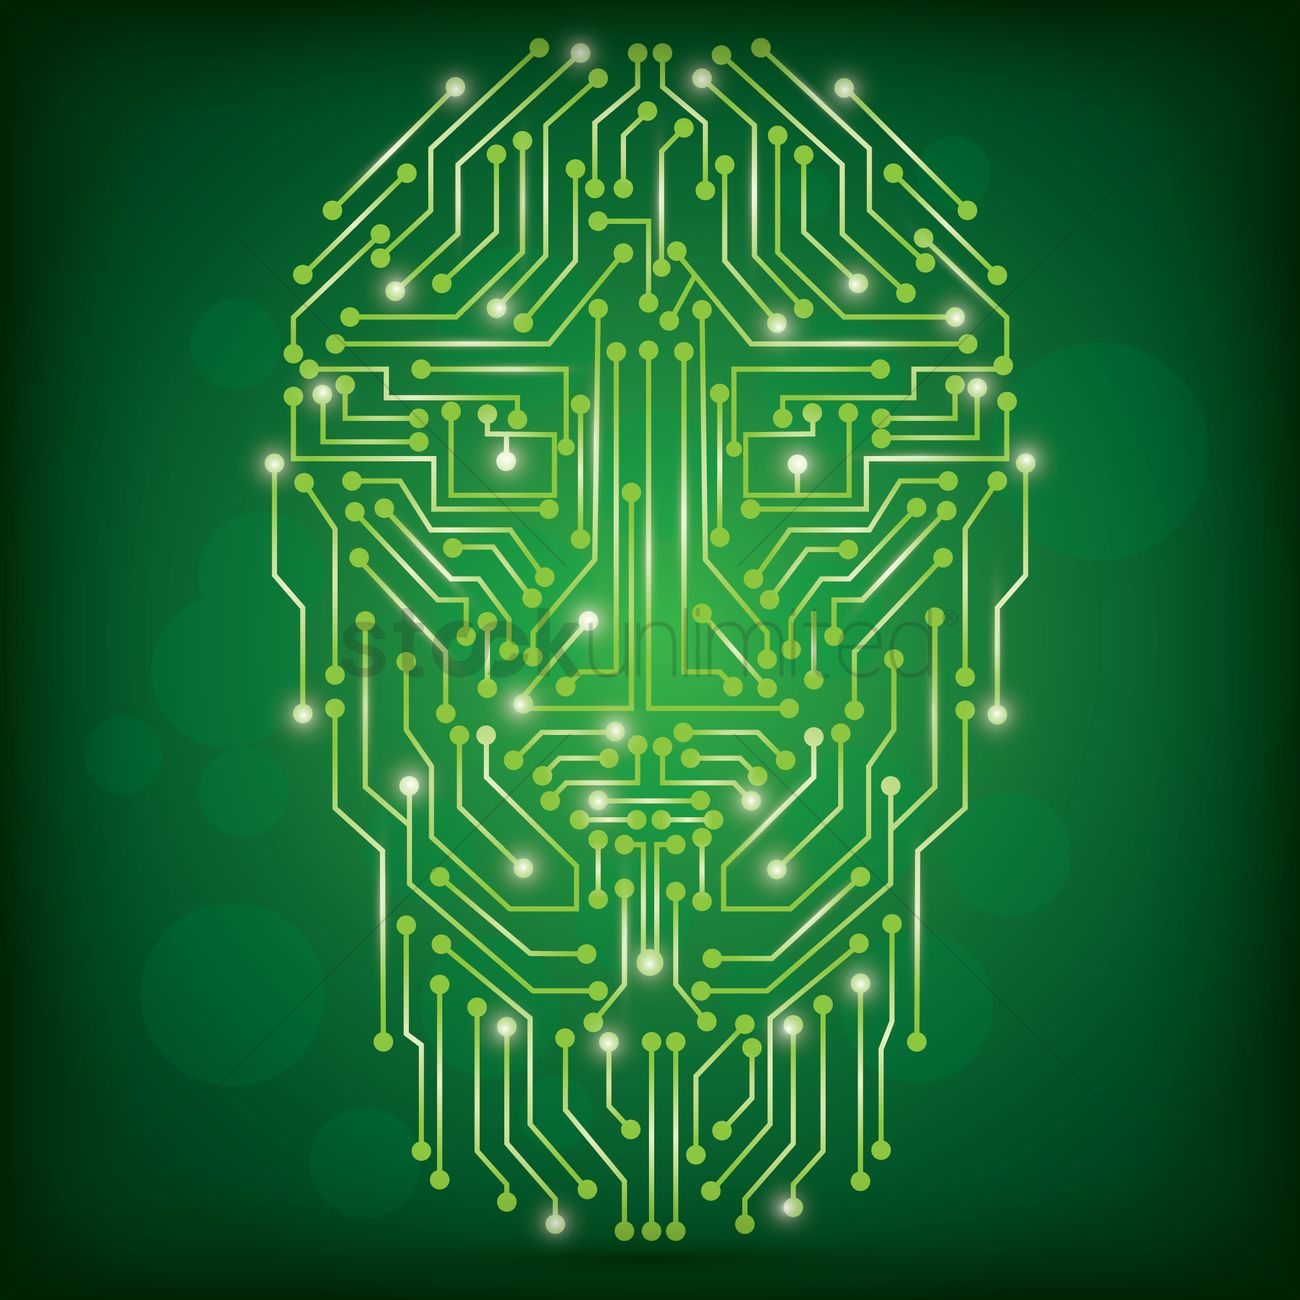 hight resolution of circuit board human face design vector graphic